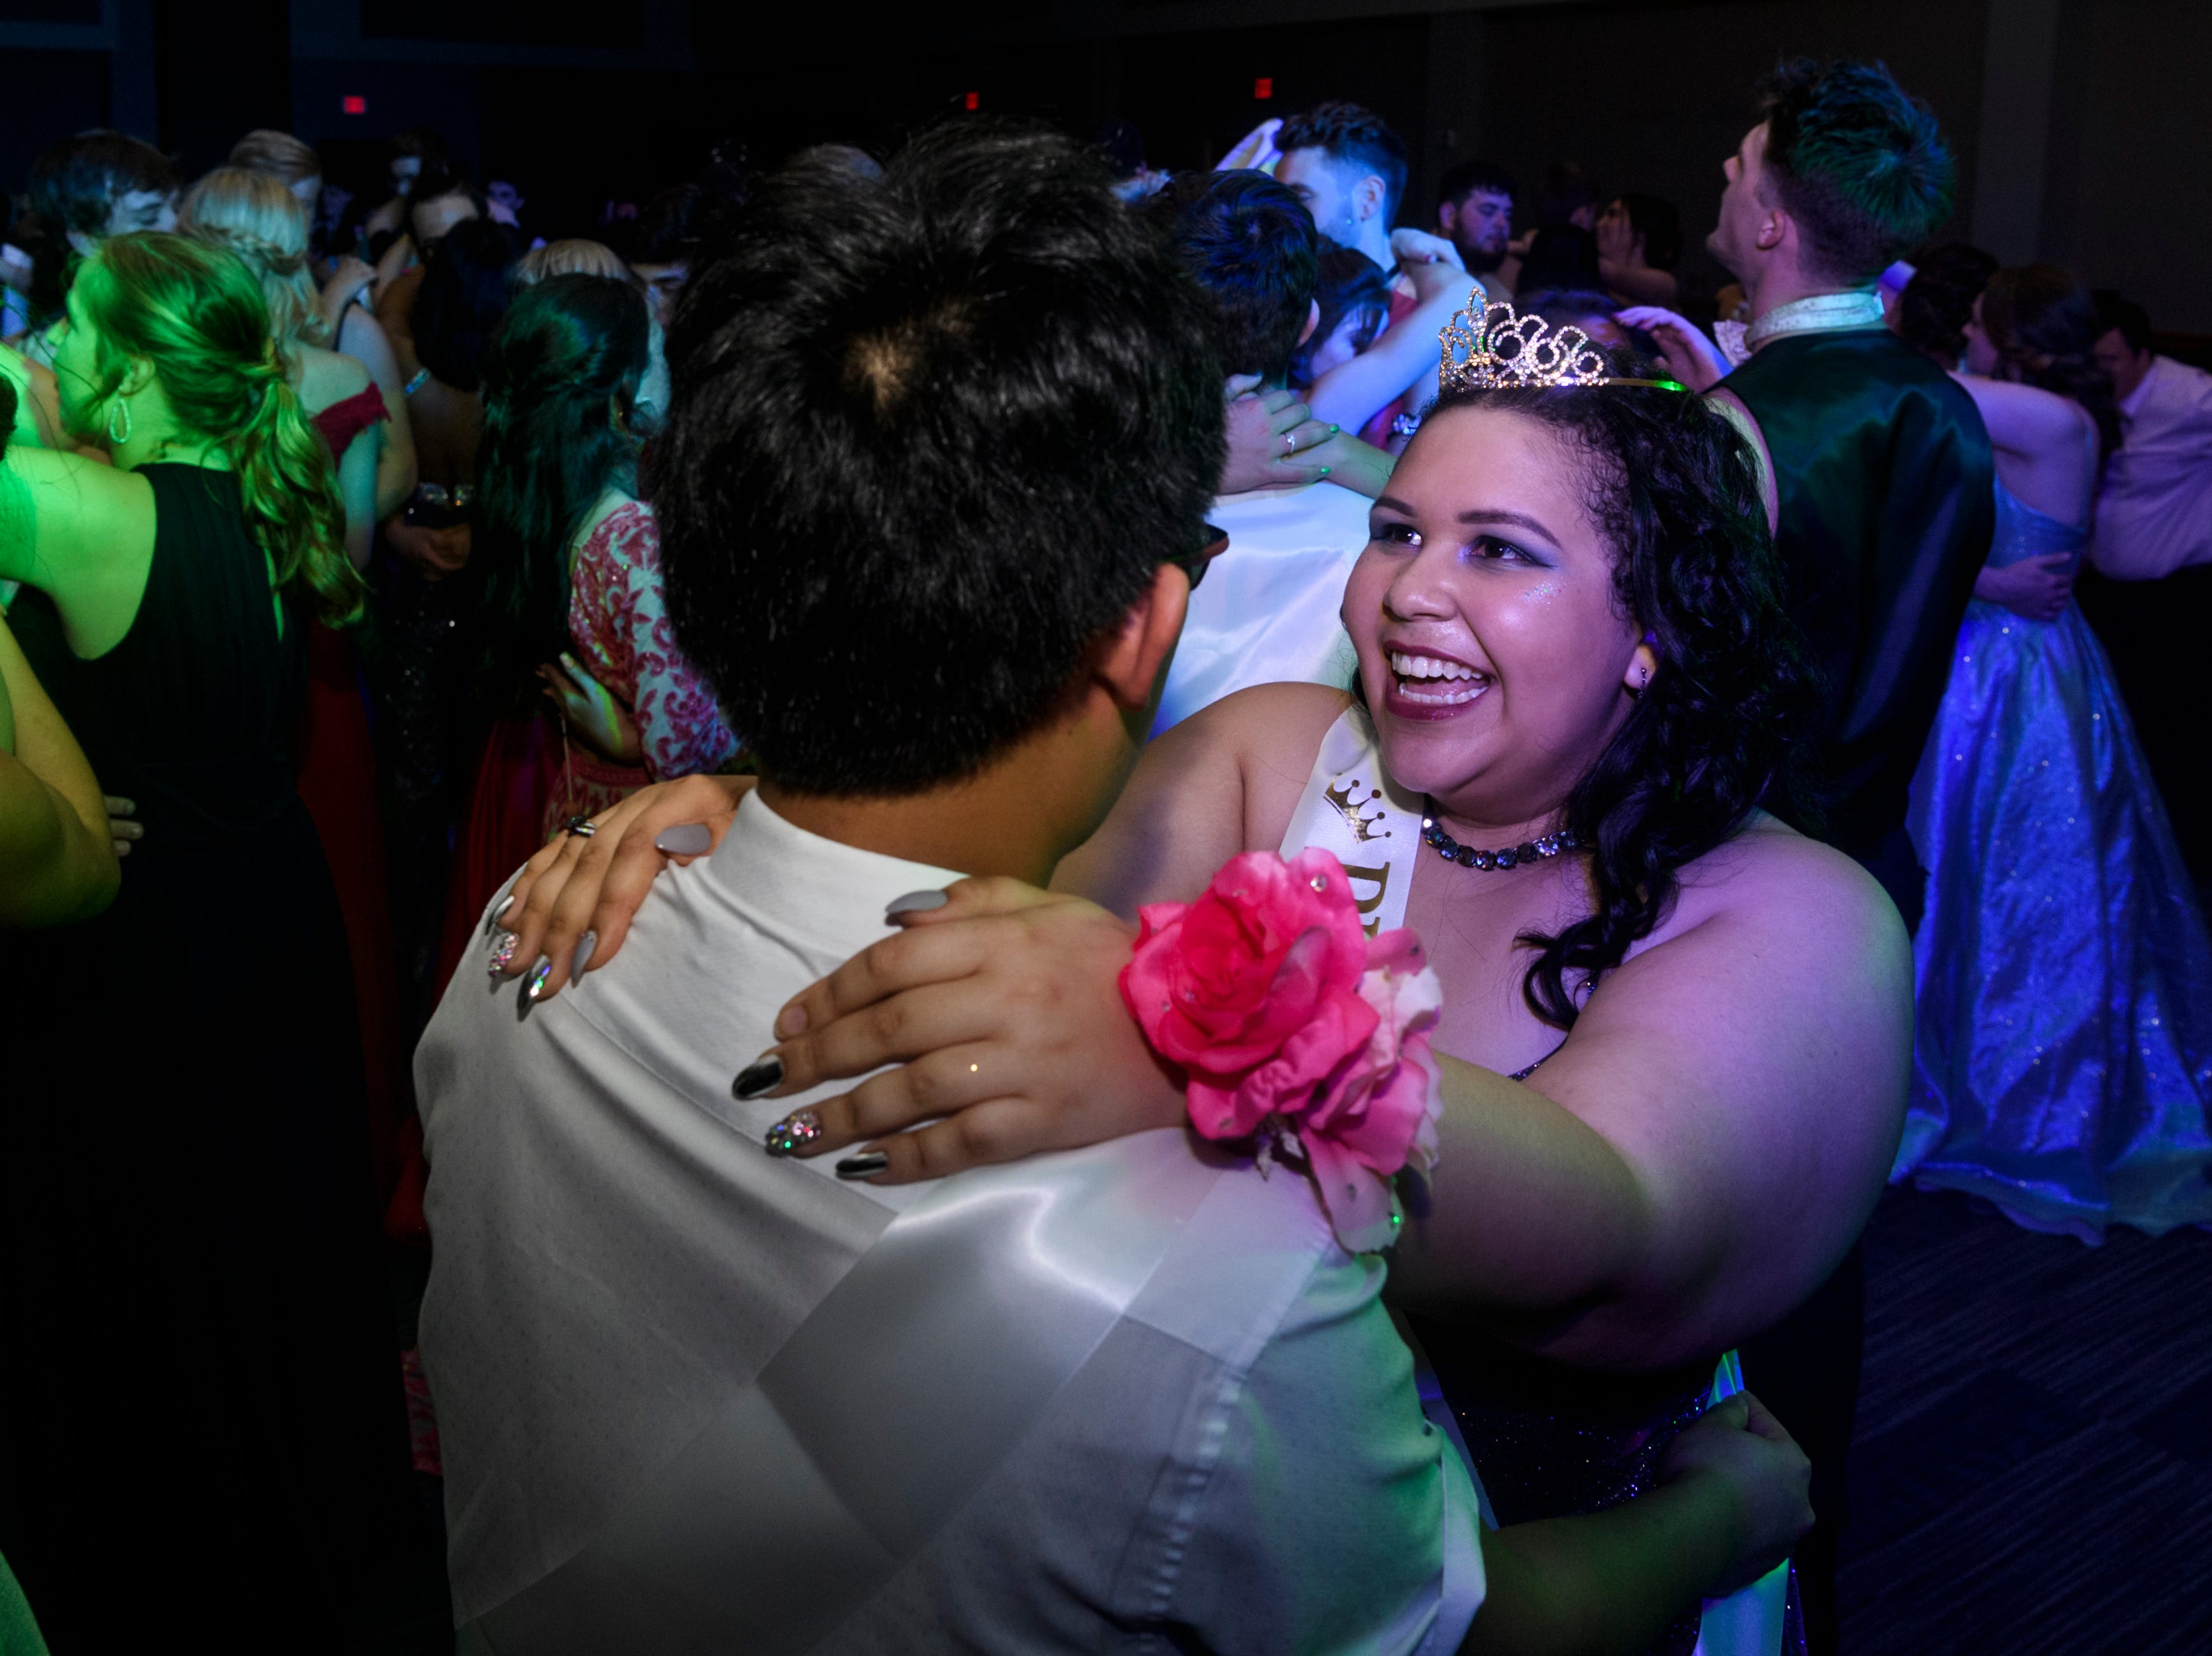 Prom King and Queen Yuxuan Bai, left, and Bralyn Shripka, right, share a dance after being crowned during Mt. Vernon's prom at University of Southern Indiana's Carter Hall in Evansville, Ind., Saturday, May 4, 2019.